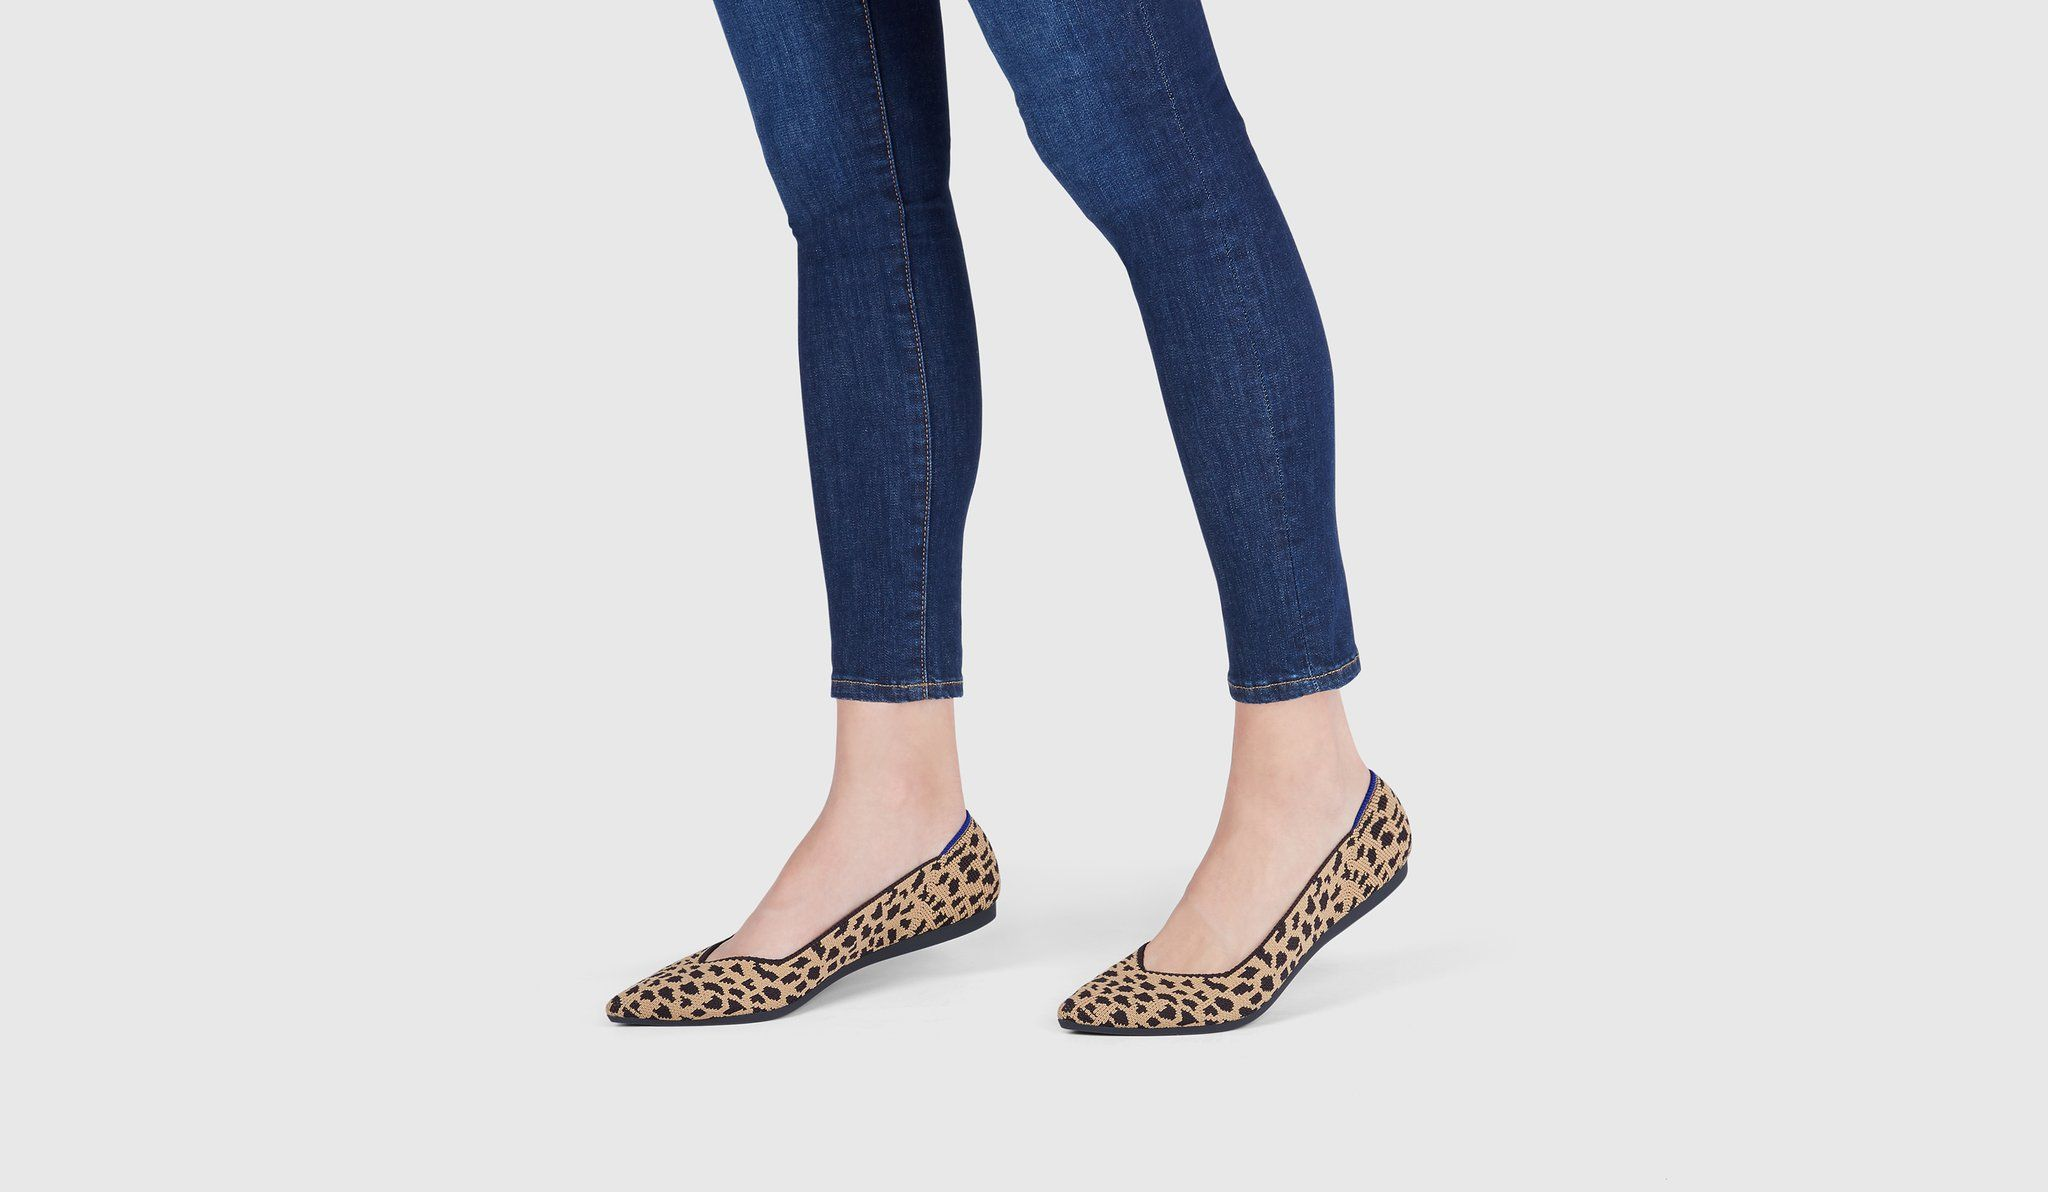 c413a6743a03 Leopard print pointed toe Rothy's //versatile shoe: one with the ease of a